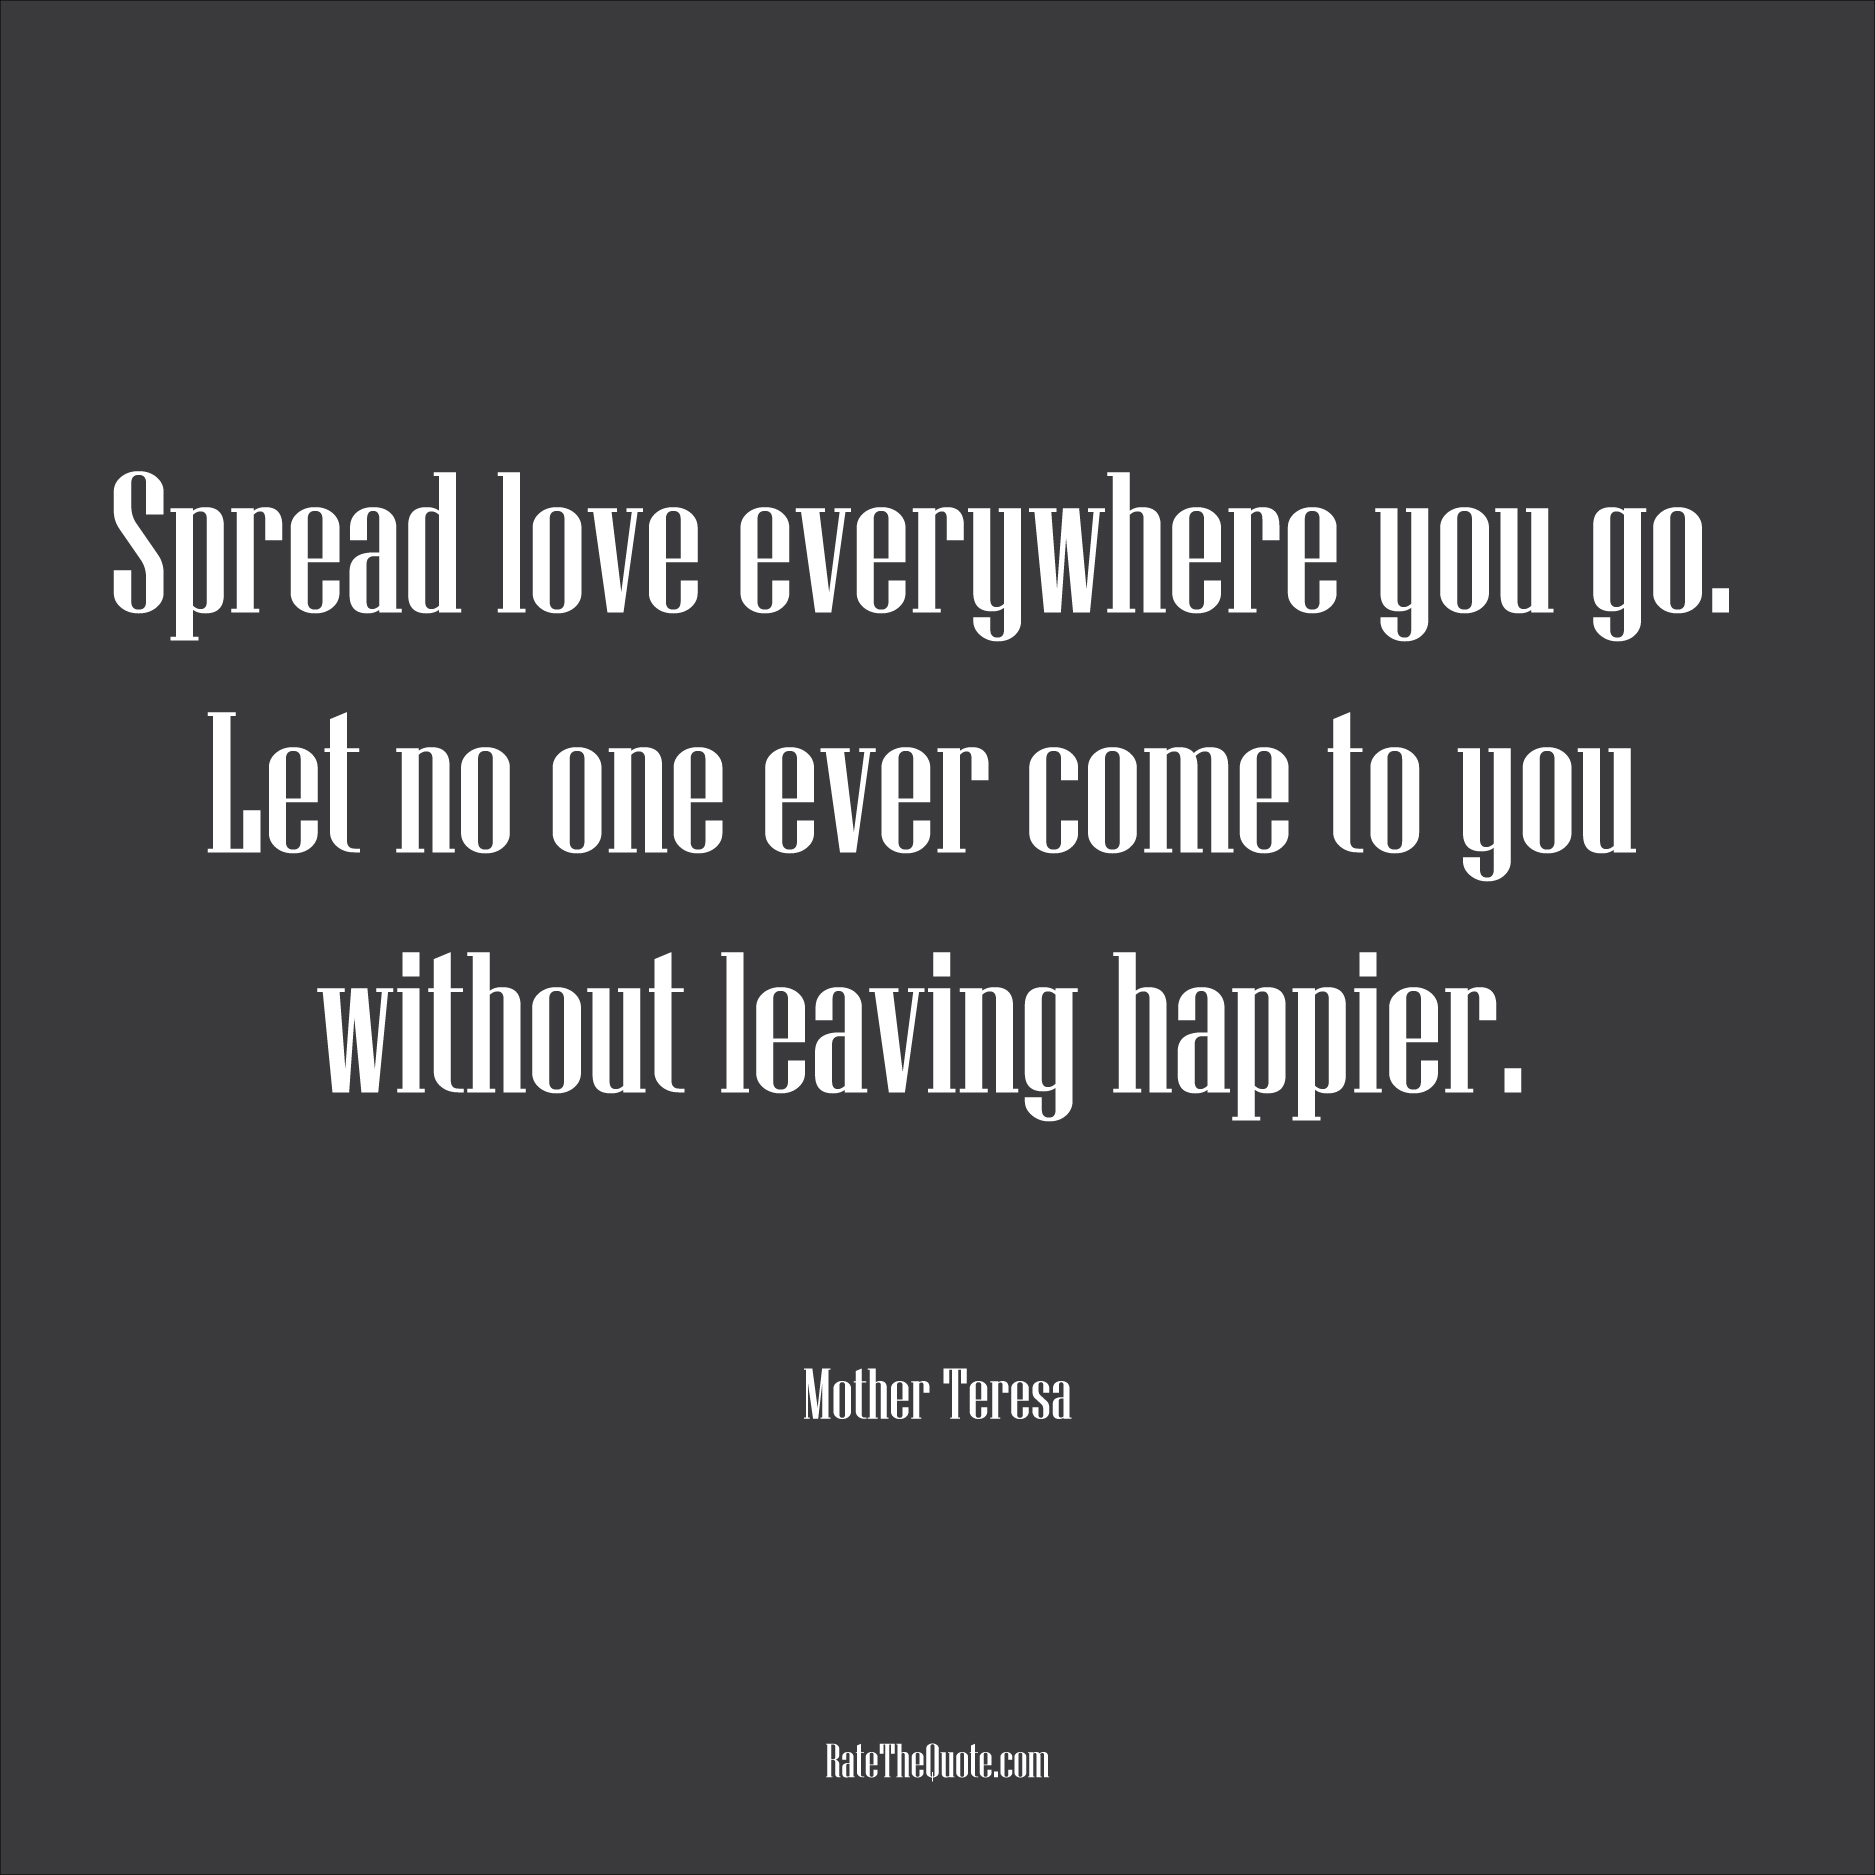 Love Quotes Spread love everywhere you go. Let no one ever come to you without leaving happier. Mother Teresa